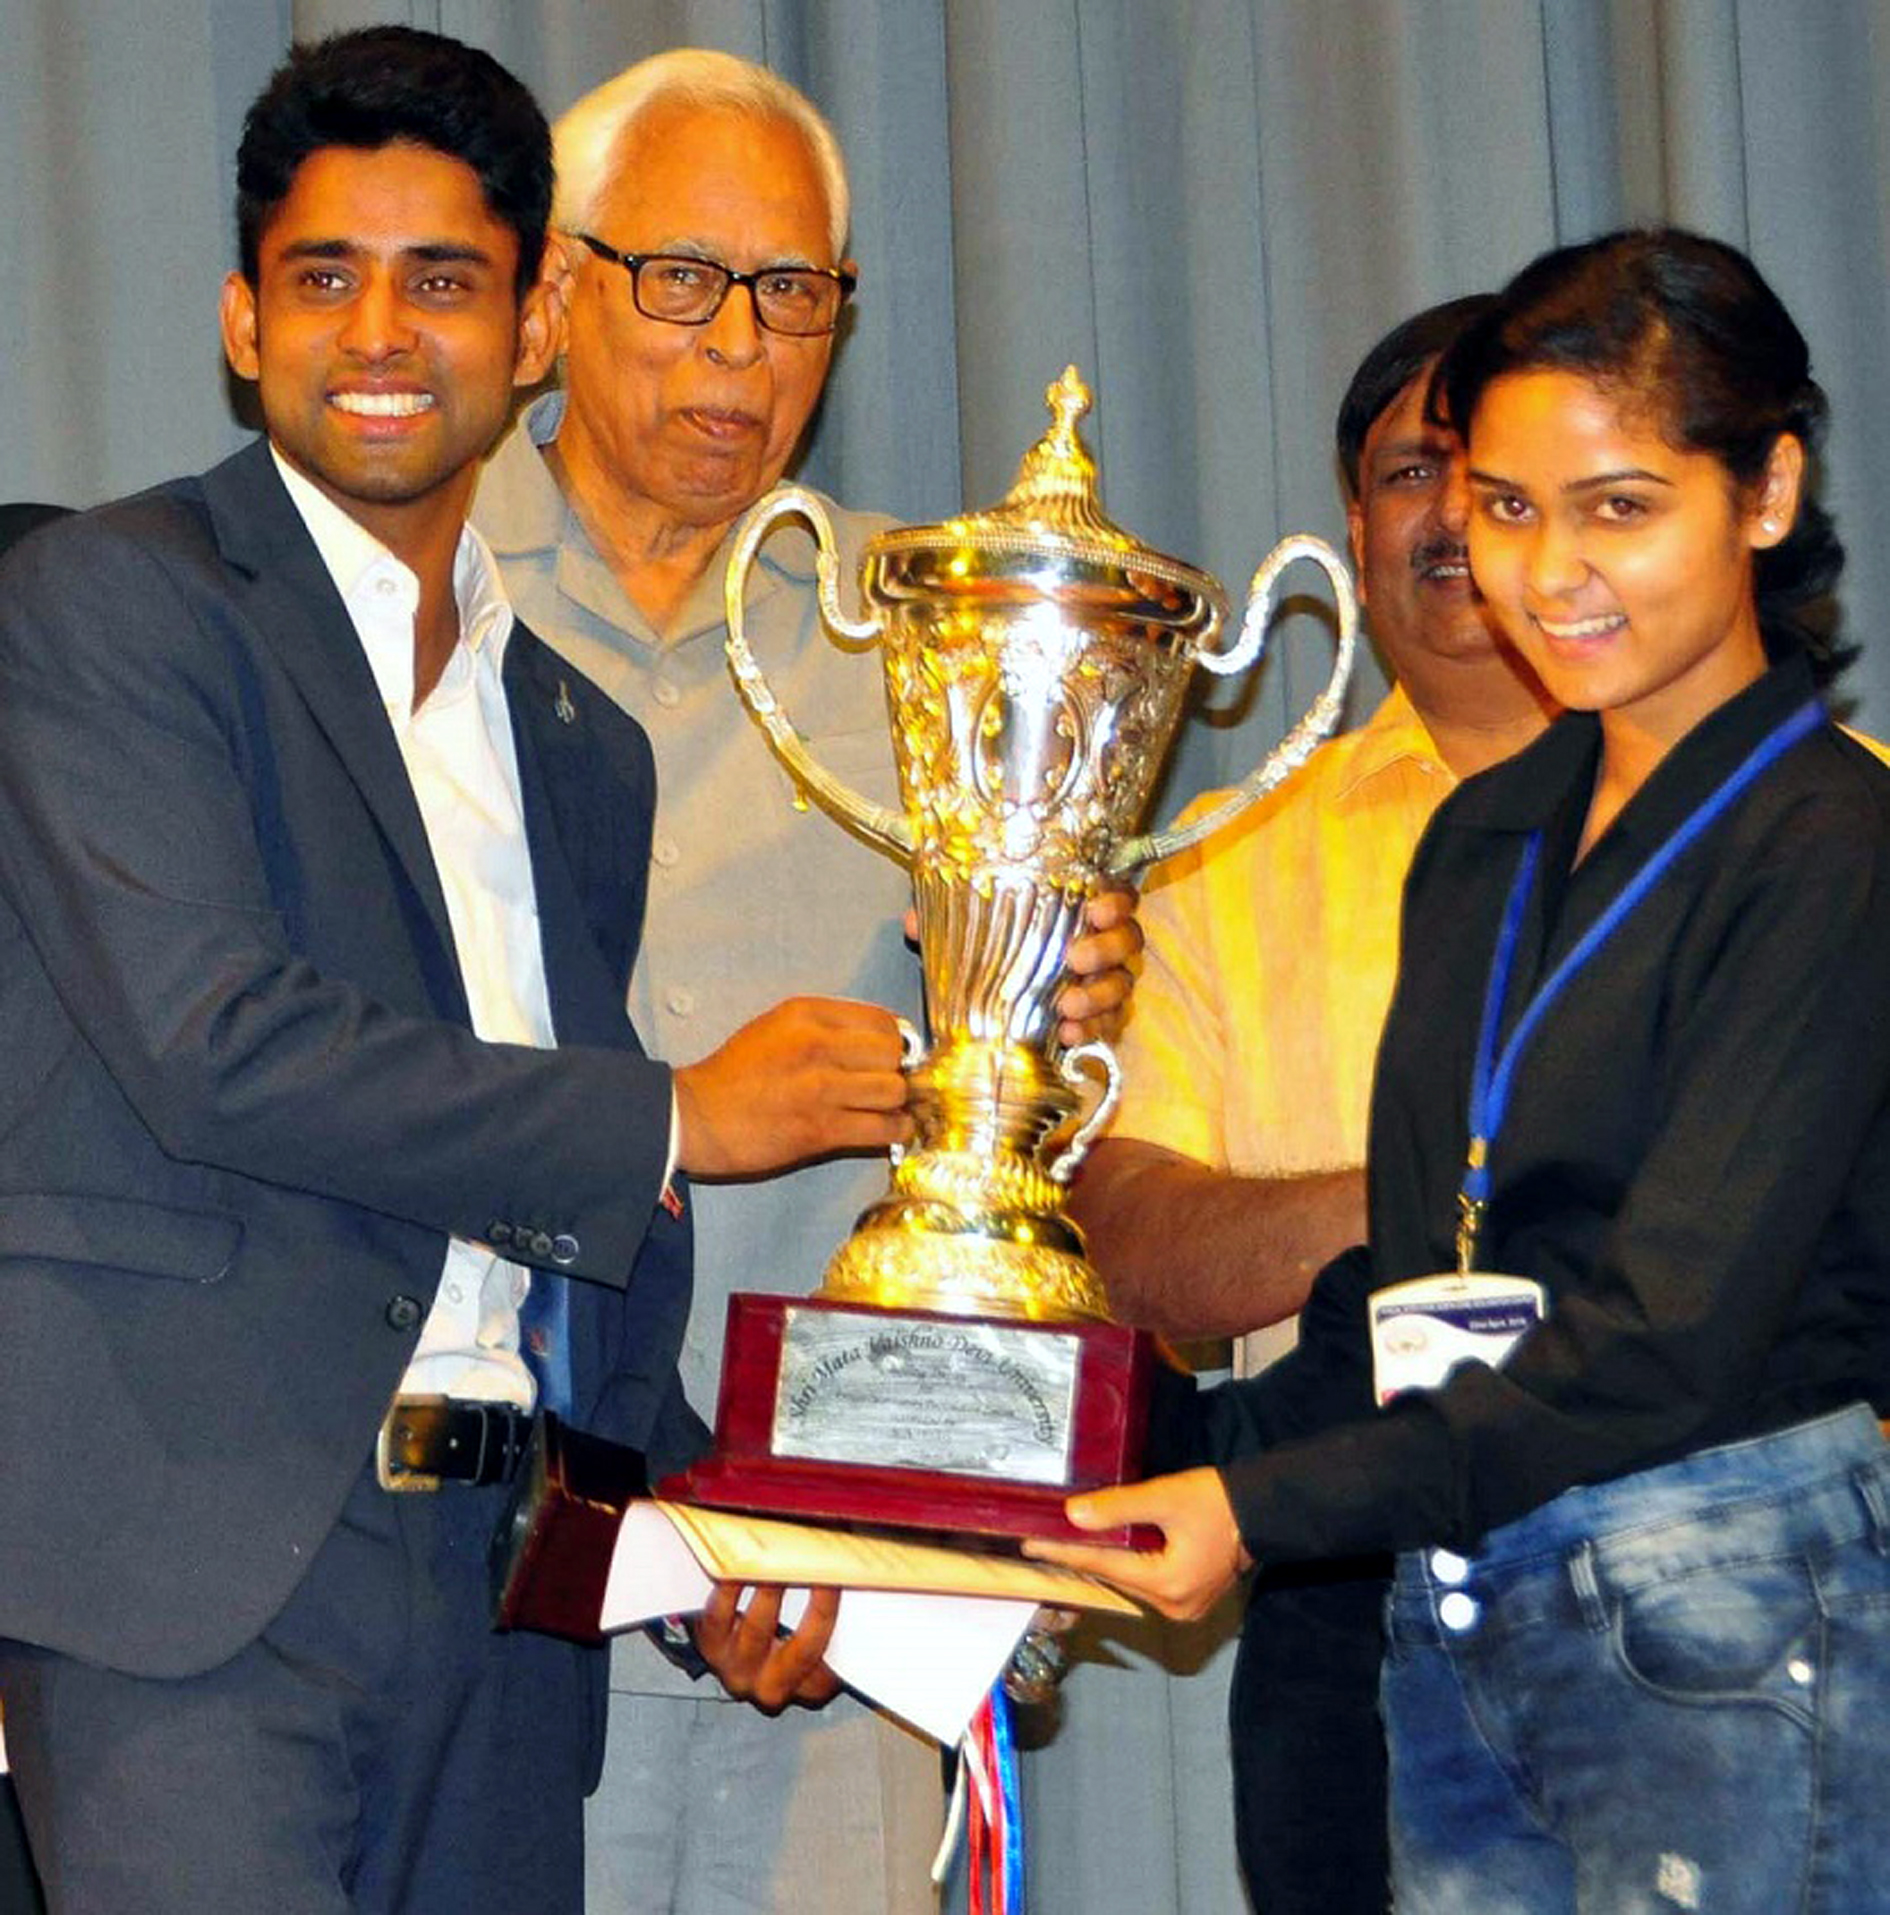 Gtovernor N N Vohra presenting silver rolling trophy to the winners.